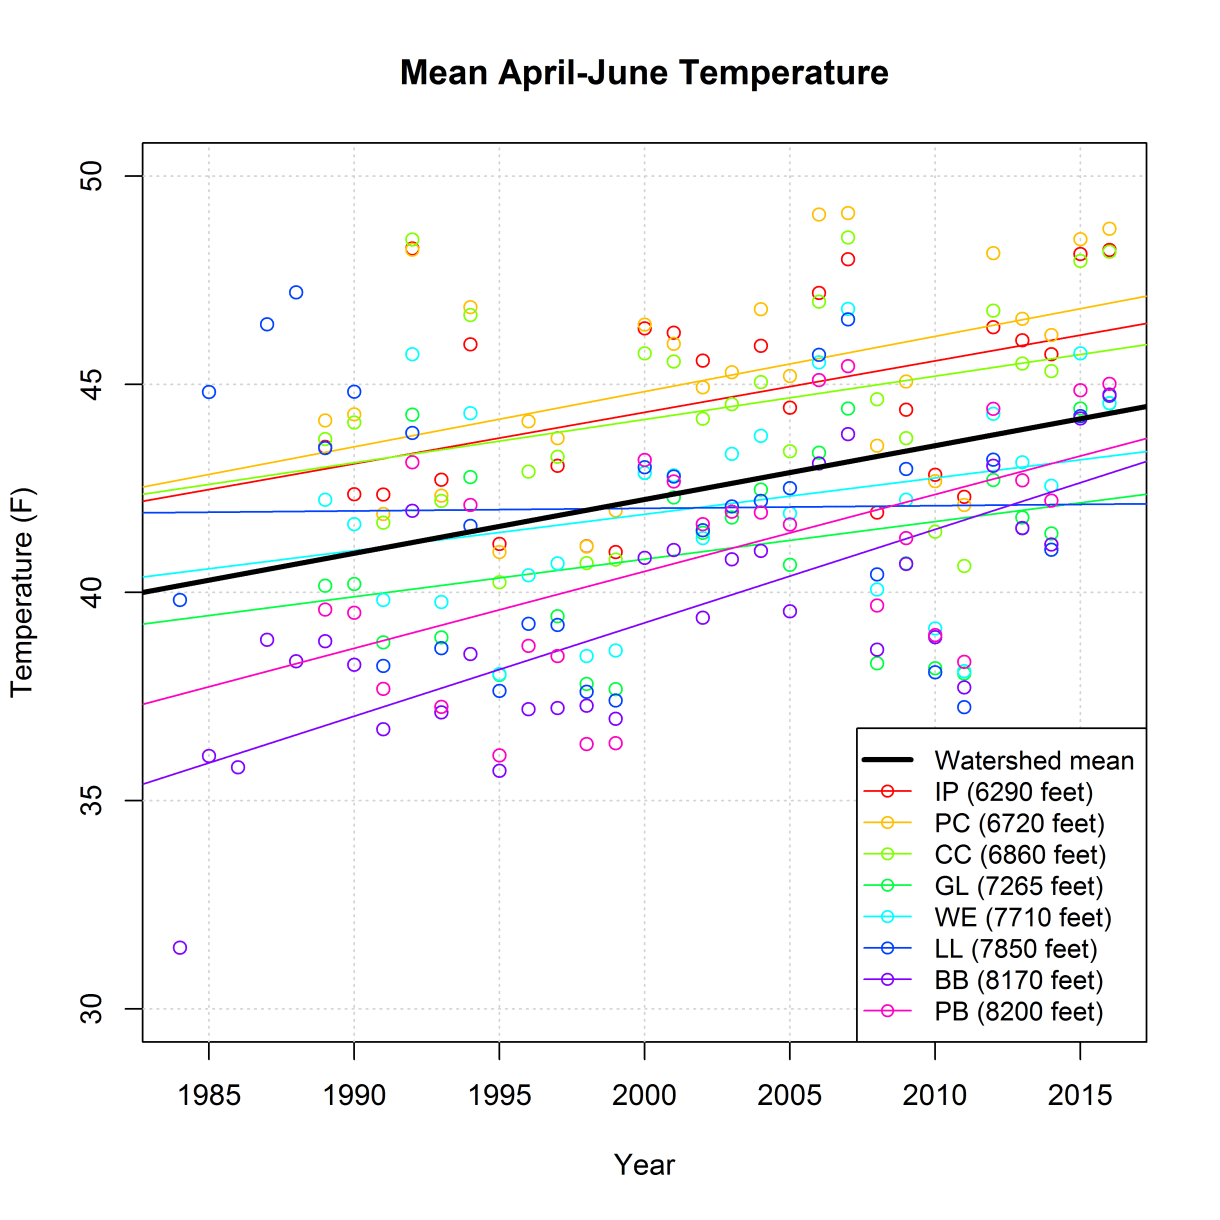 Graph of trends in April-June temperature since 1984.